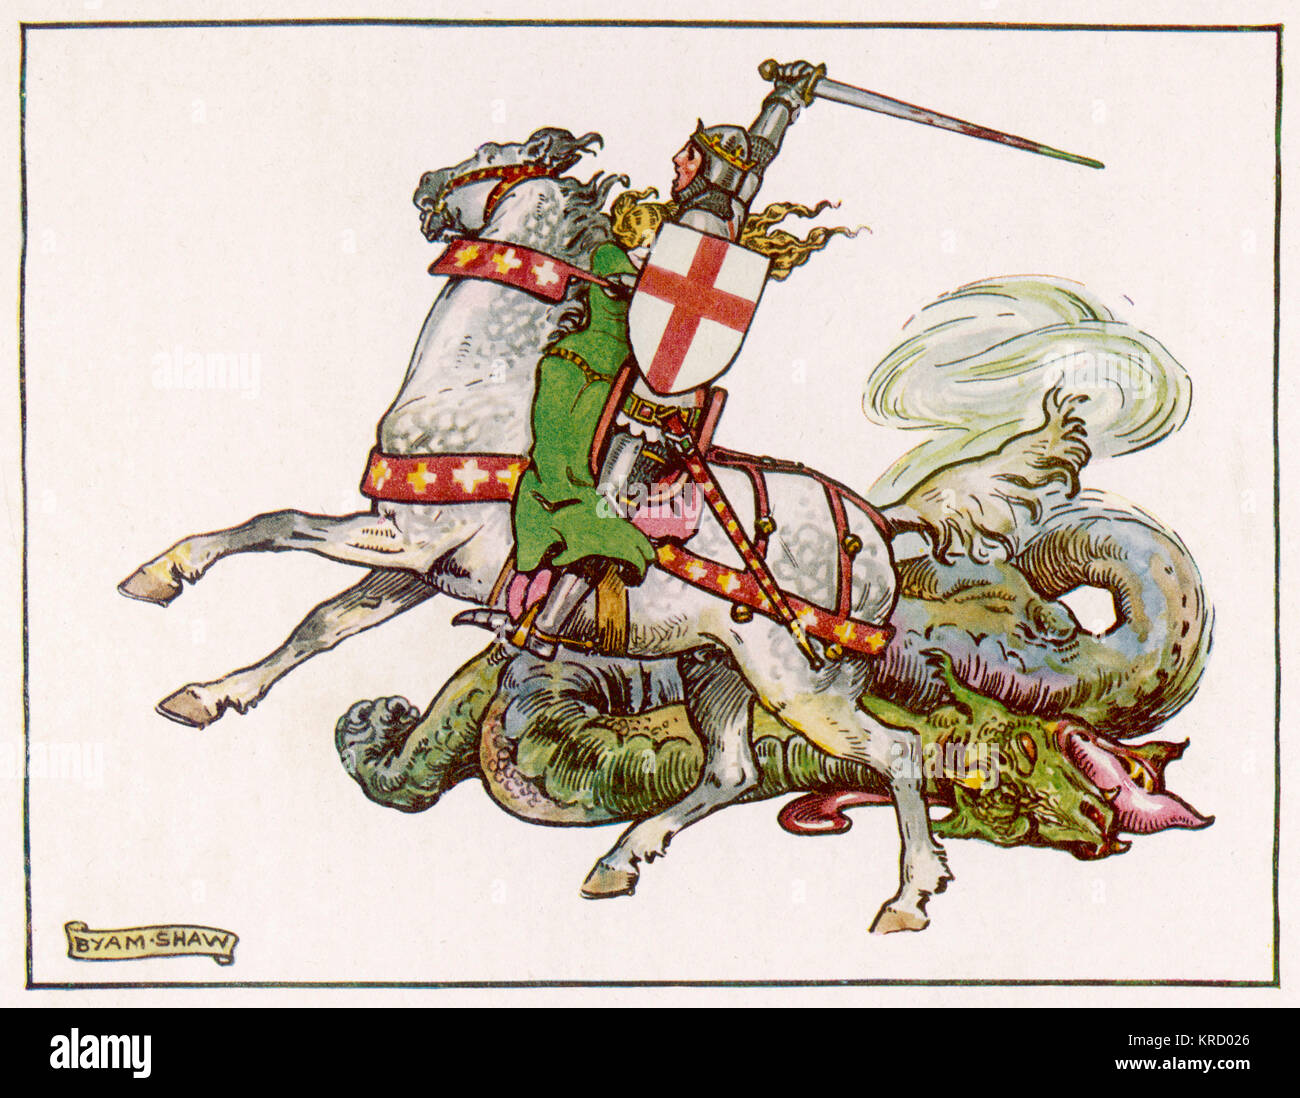 SAINT GEORGE 'What Every Johnnie Bull  Knows' drawn by Byam Shaw  depicting a rather vicious  looking St. - Stock Image